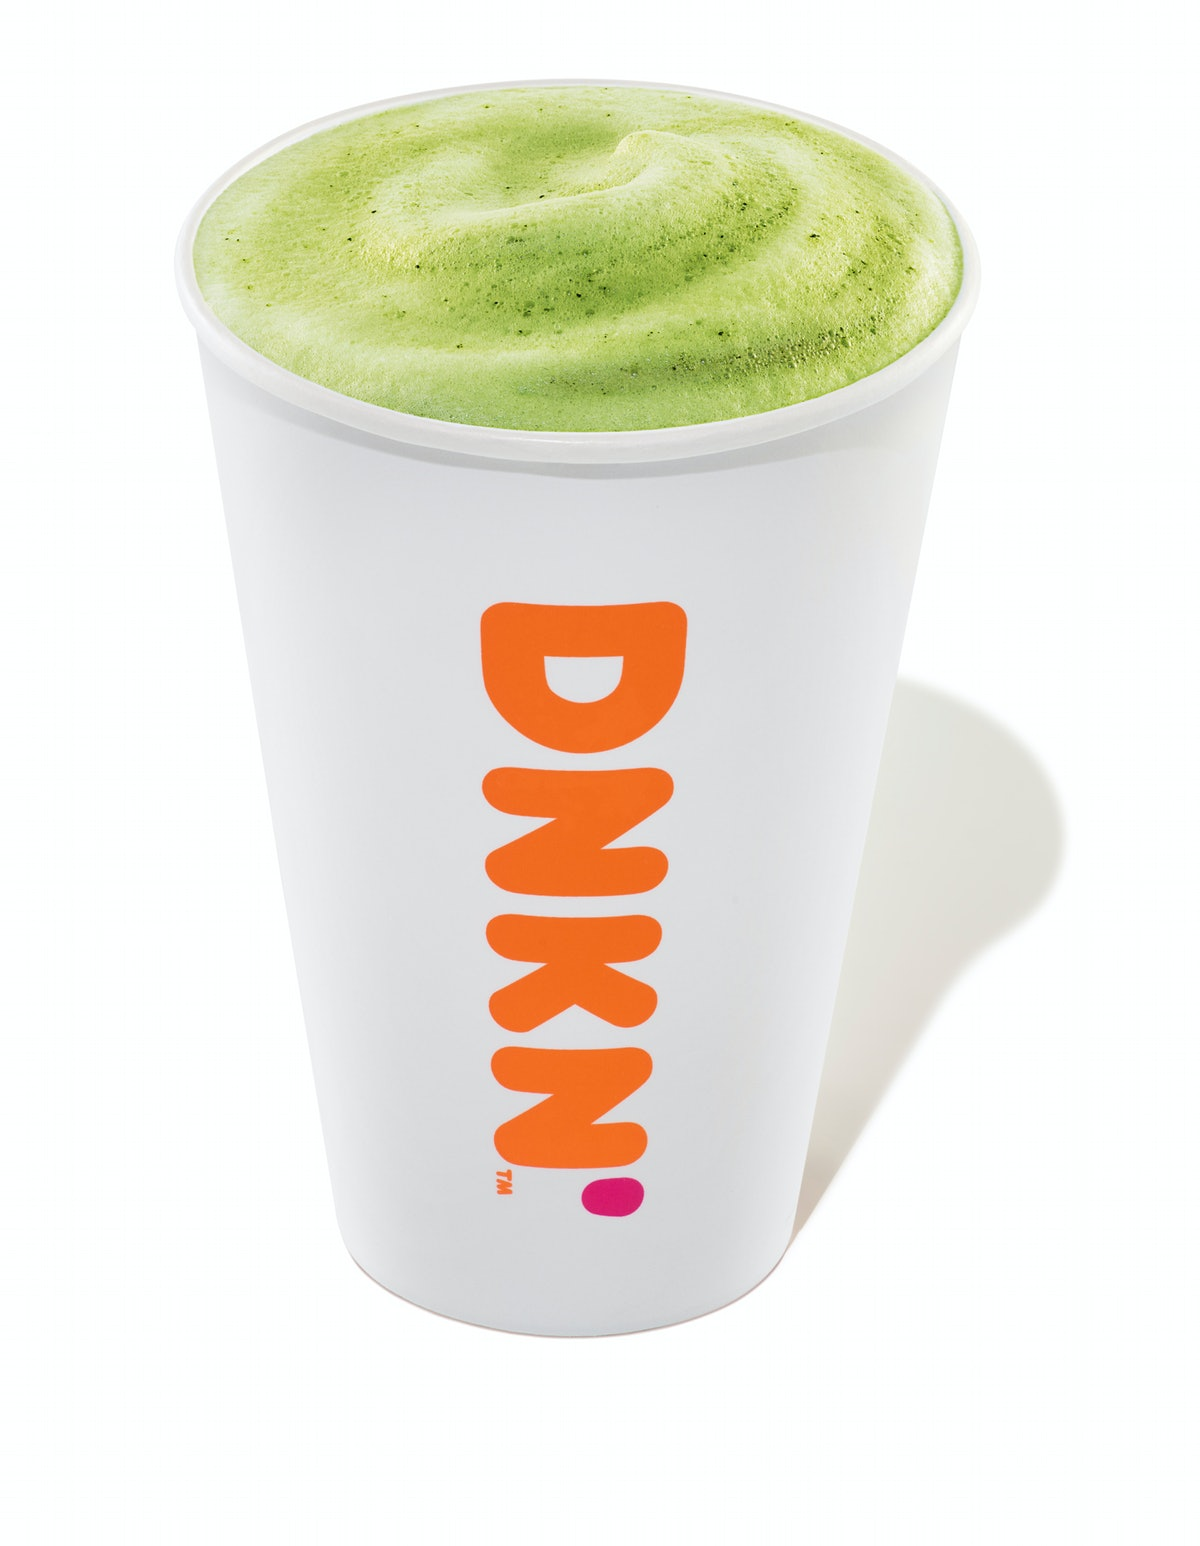 Dunkin's new Matcha Lattes for 2020 will be available starting Feb. 26.